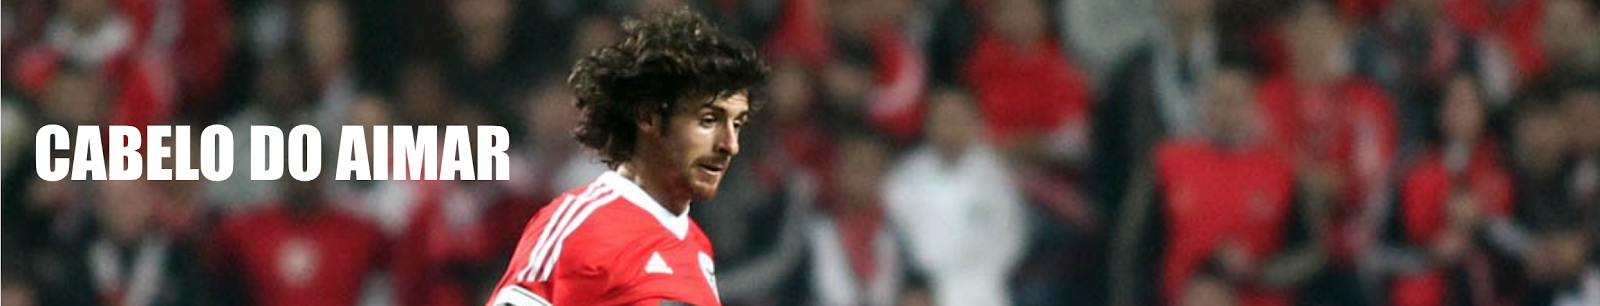 Cabelo do Aimar